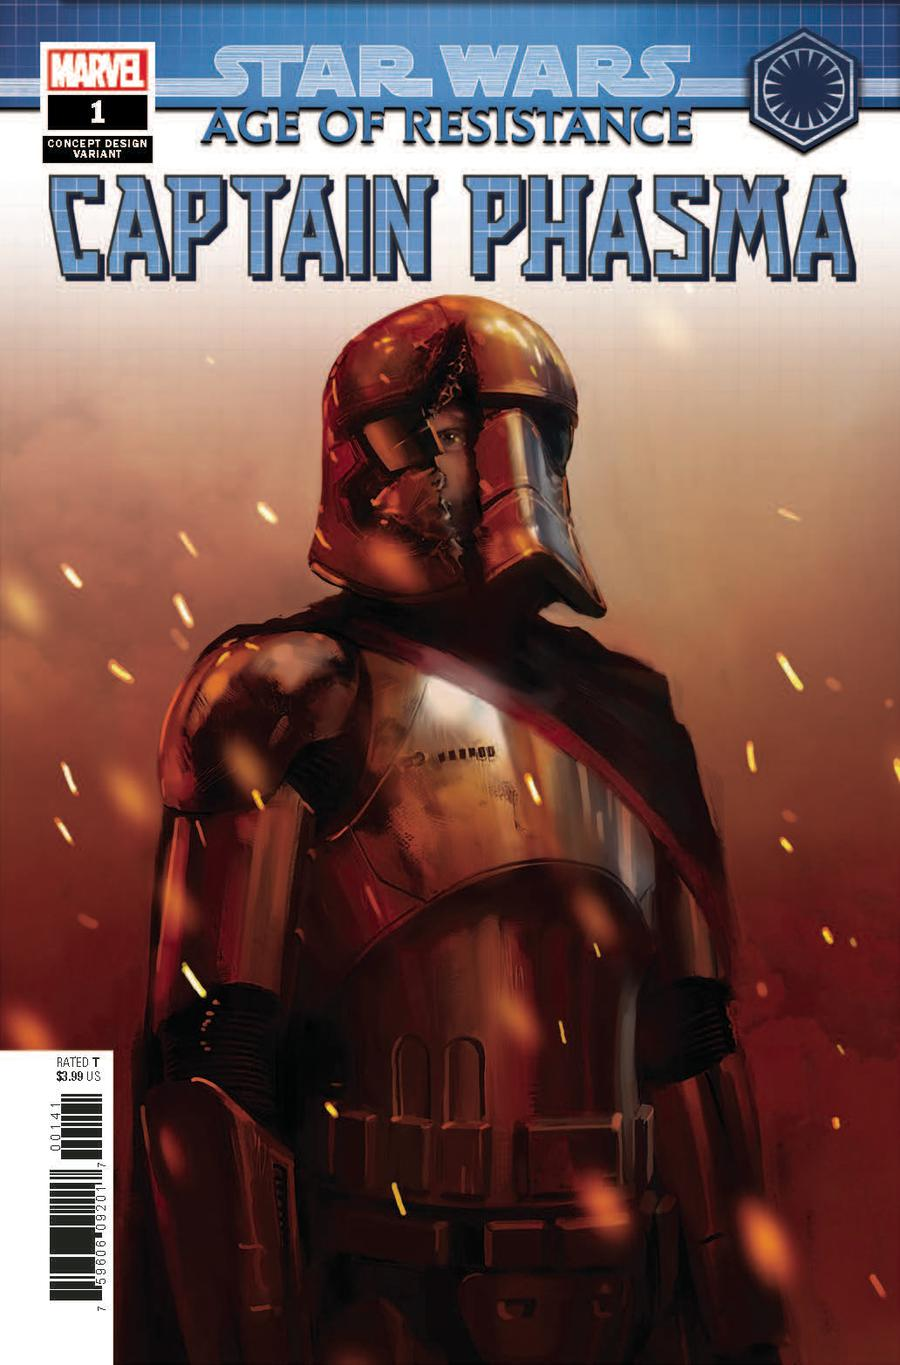 Star Wars Age Of Resistance Captain Phasma #1 Cover C Variant Artist Concept Cover